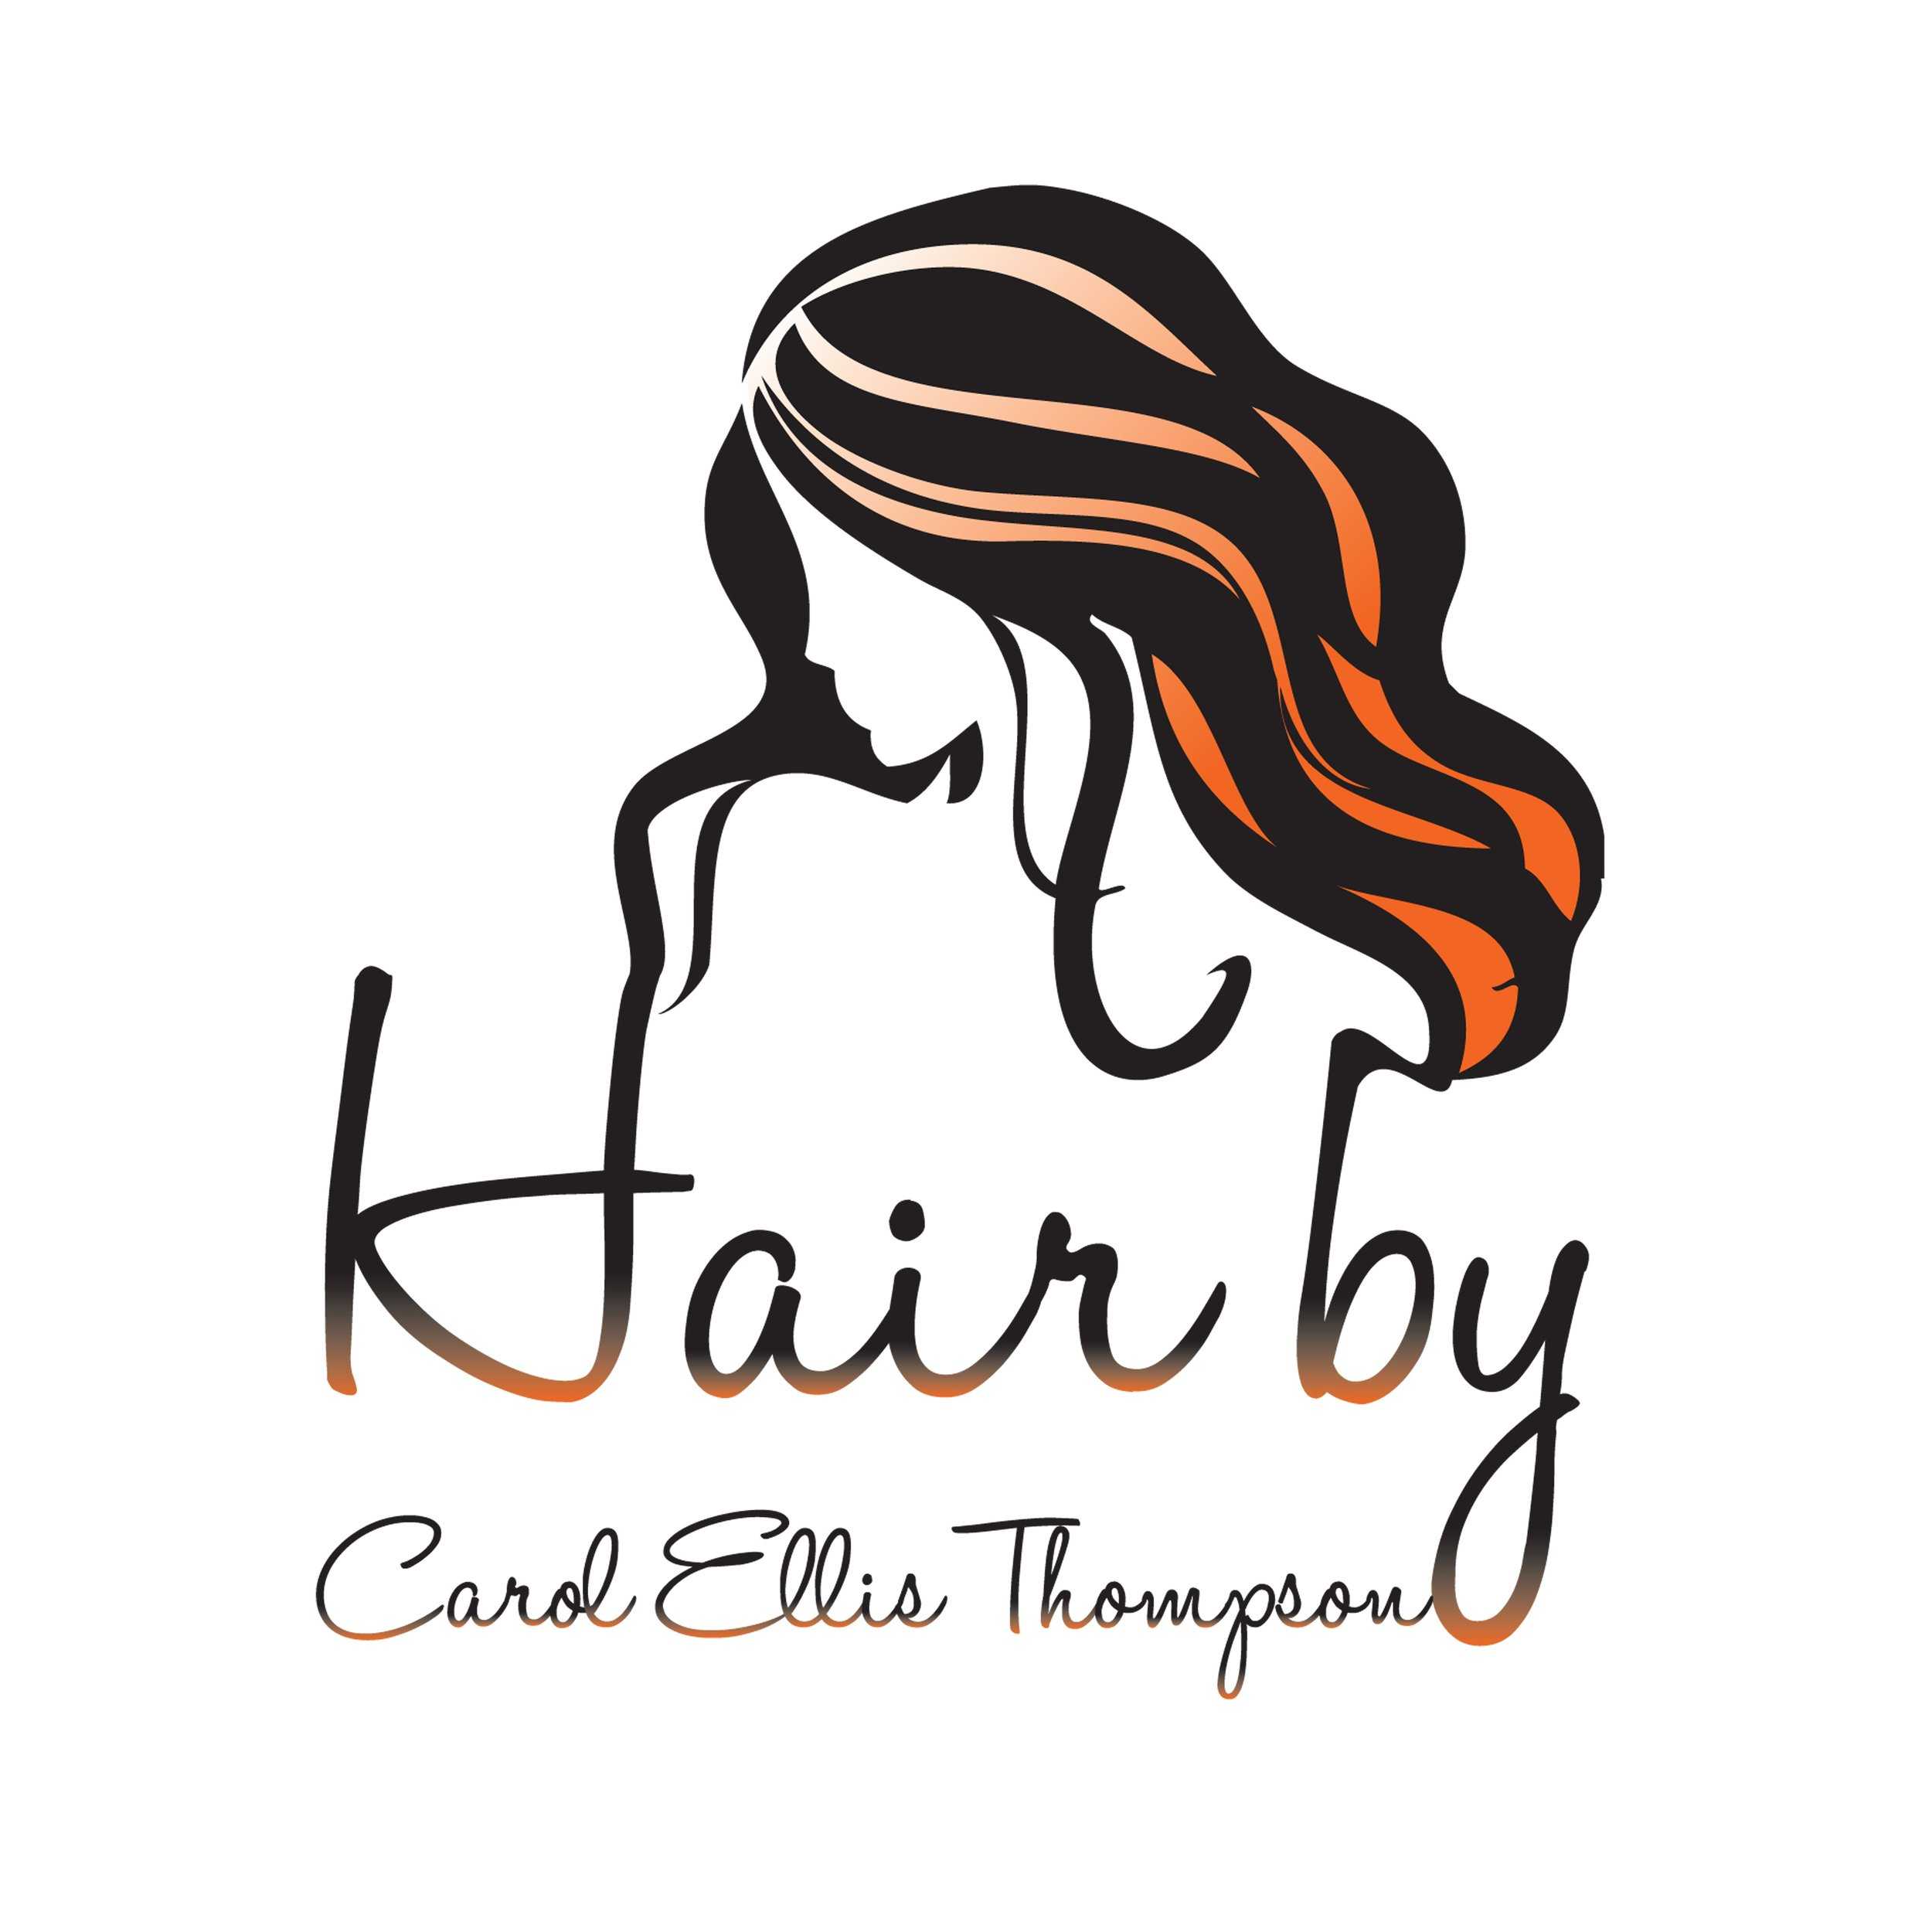 Hair by Carol Ellis Thompson Special Offer Red Event Wedding Fayre Brook Mollington Banastre Chester Wedding Fair Chester, Cheshire, North West Merseyside Wirral.jpg